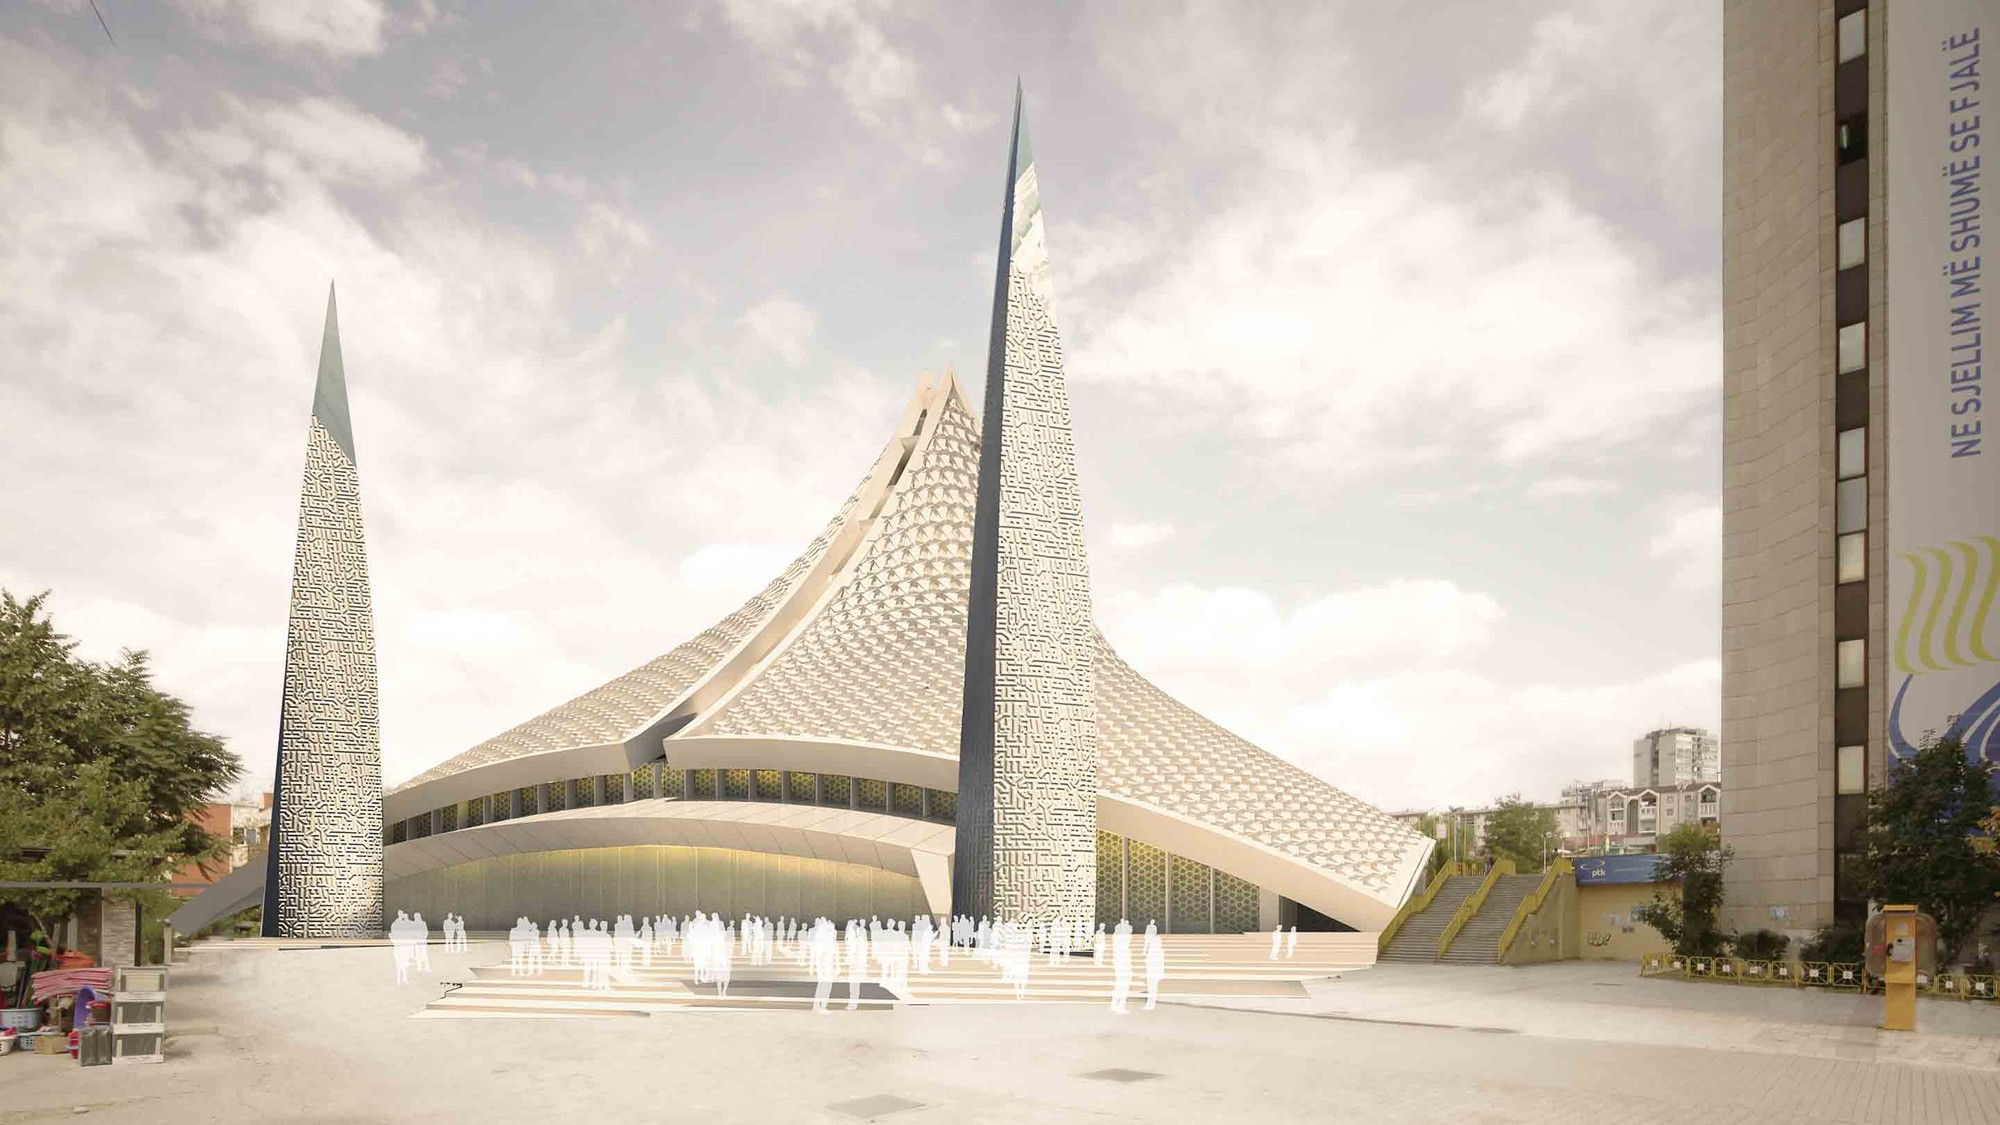 Central Mosque of Pristina Competition Entry / Victoria Stotskaia, Raof Abdelnabi, Kamel Loqman, Courtesy of Invert Studios